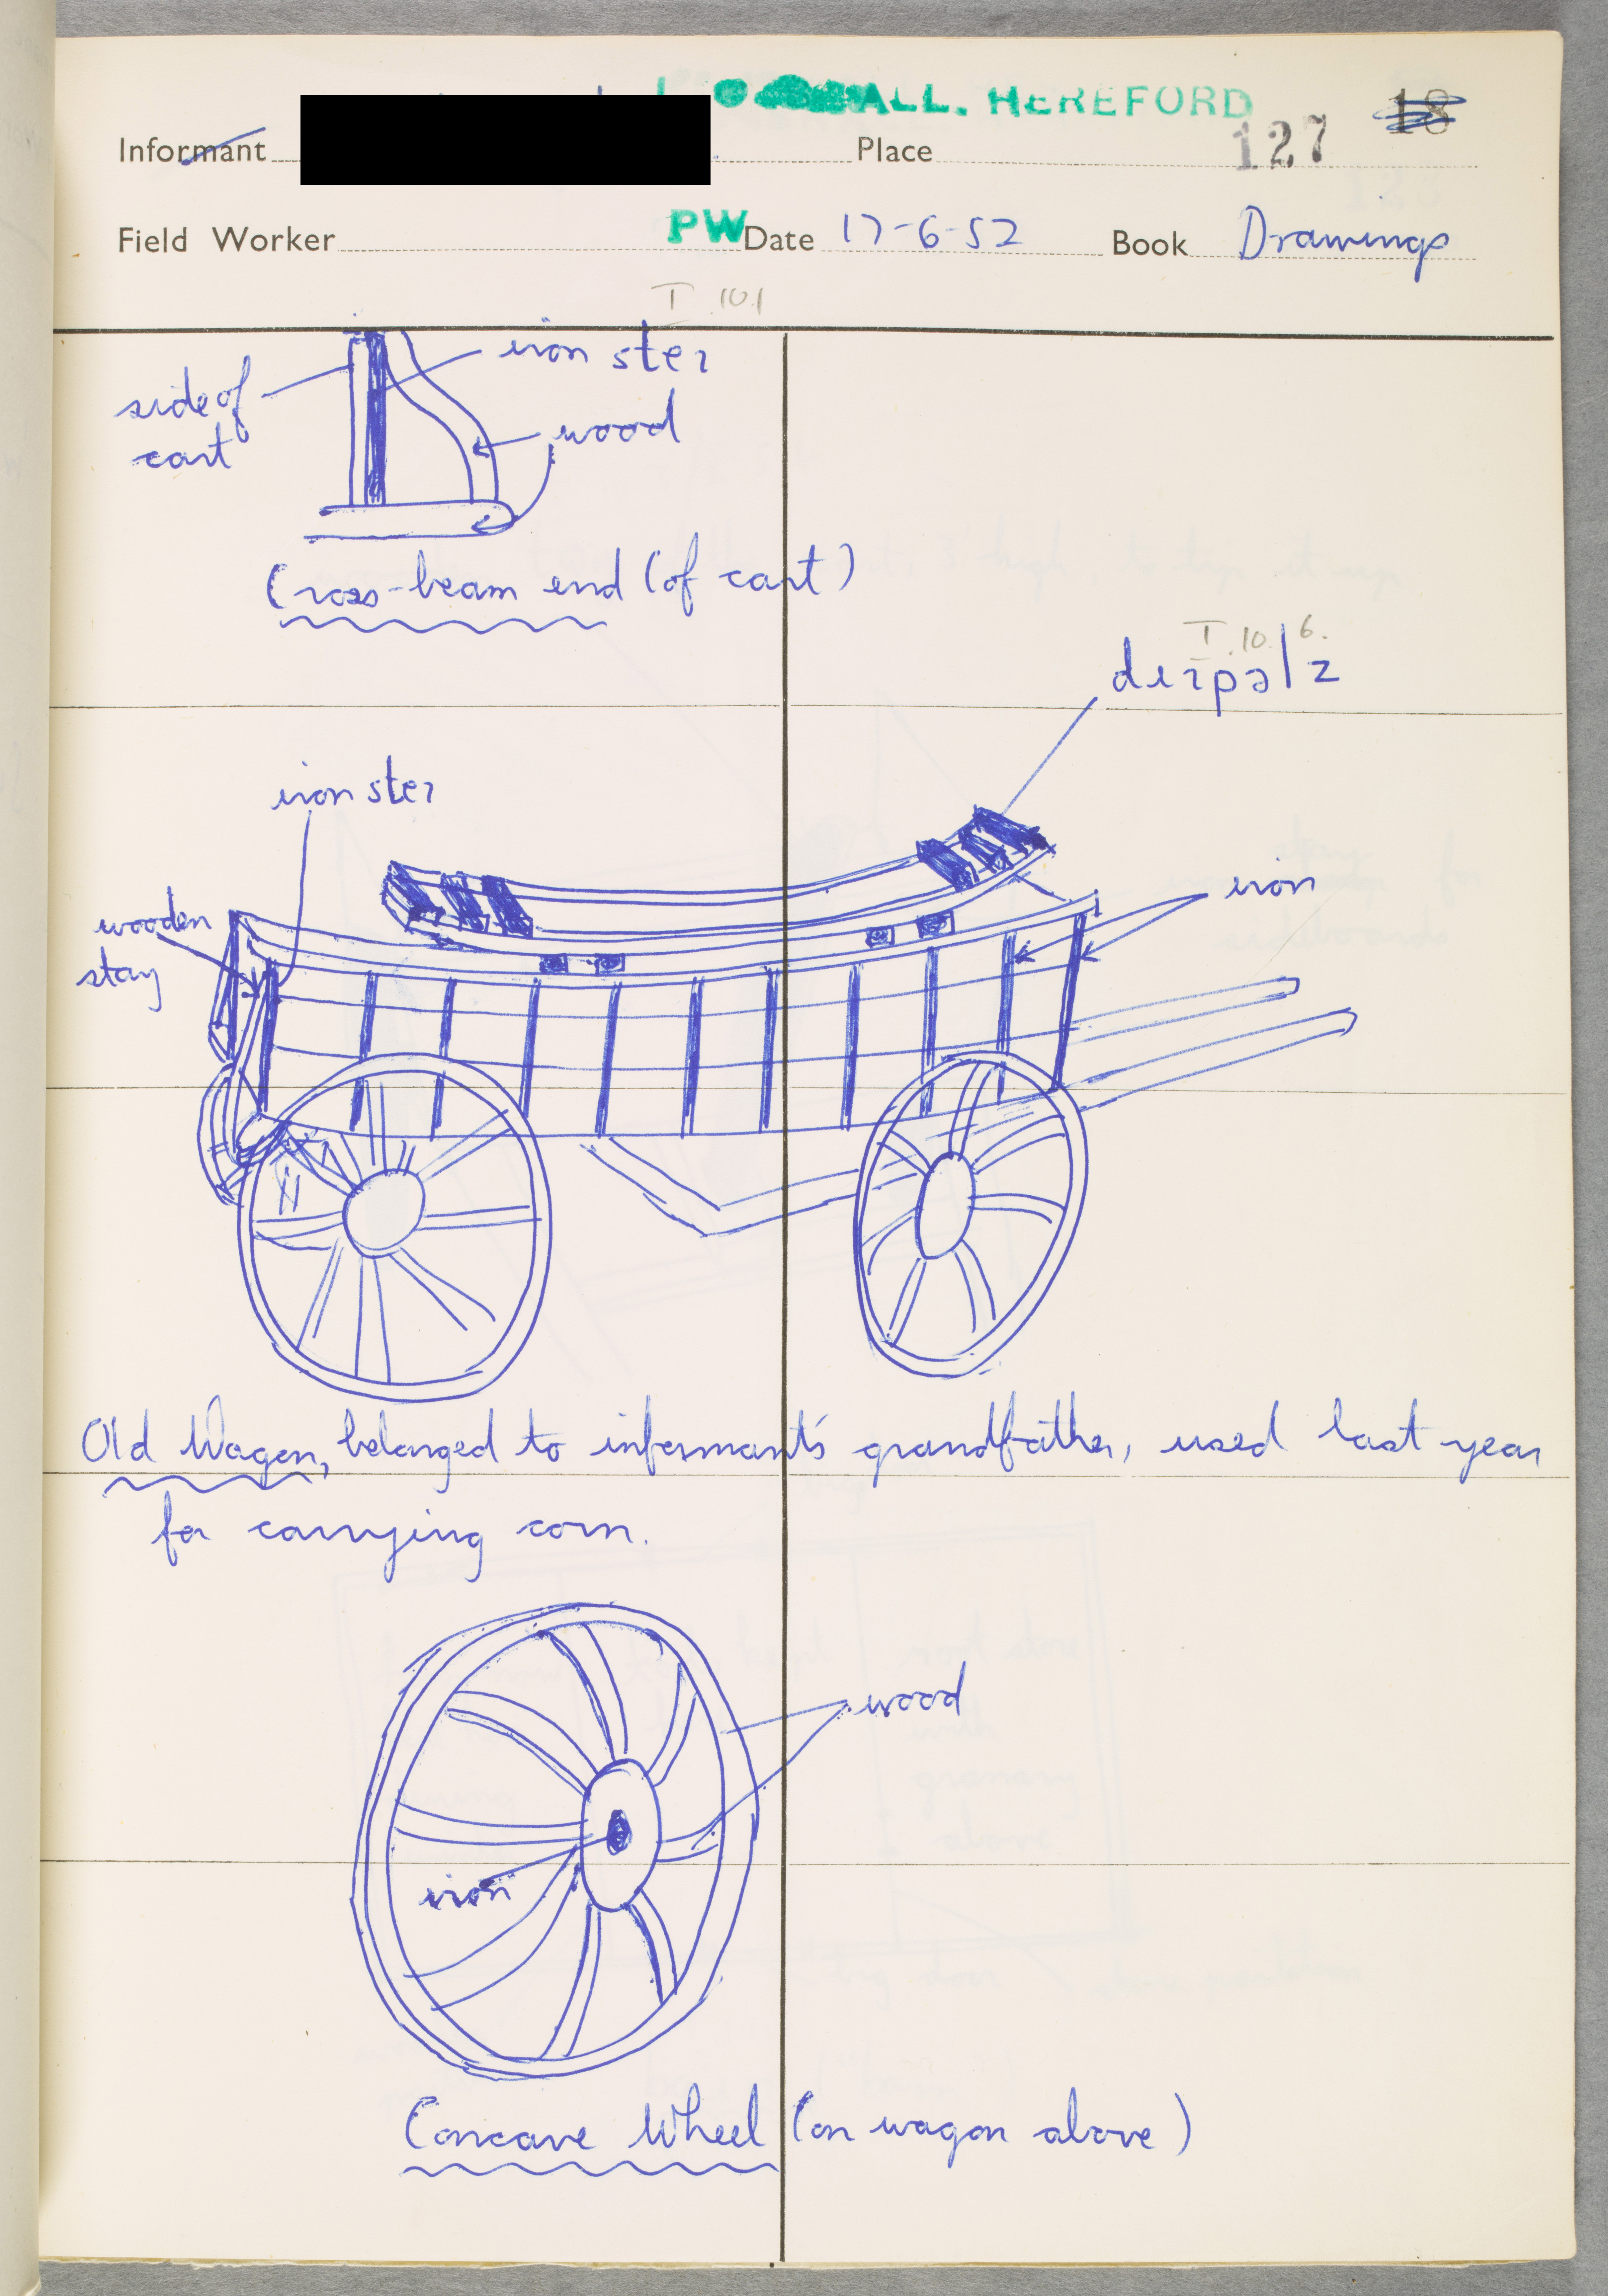 A researcher's drawing of a wagon in a notebook